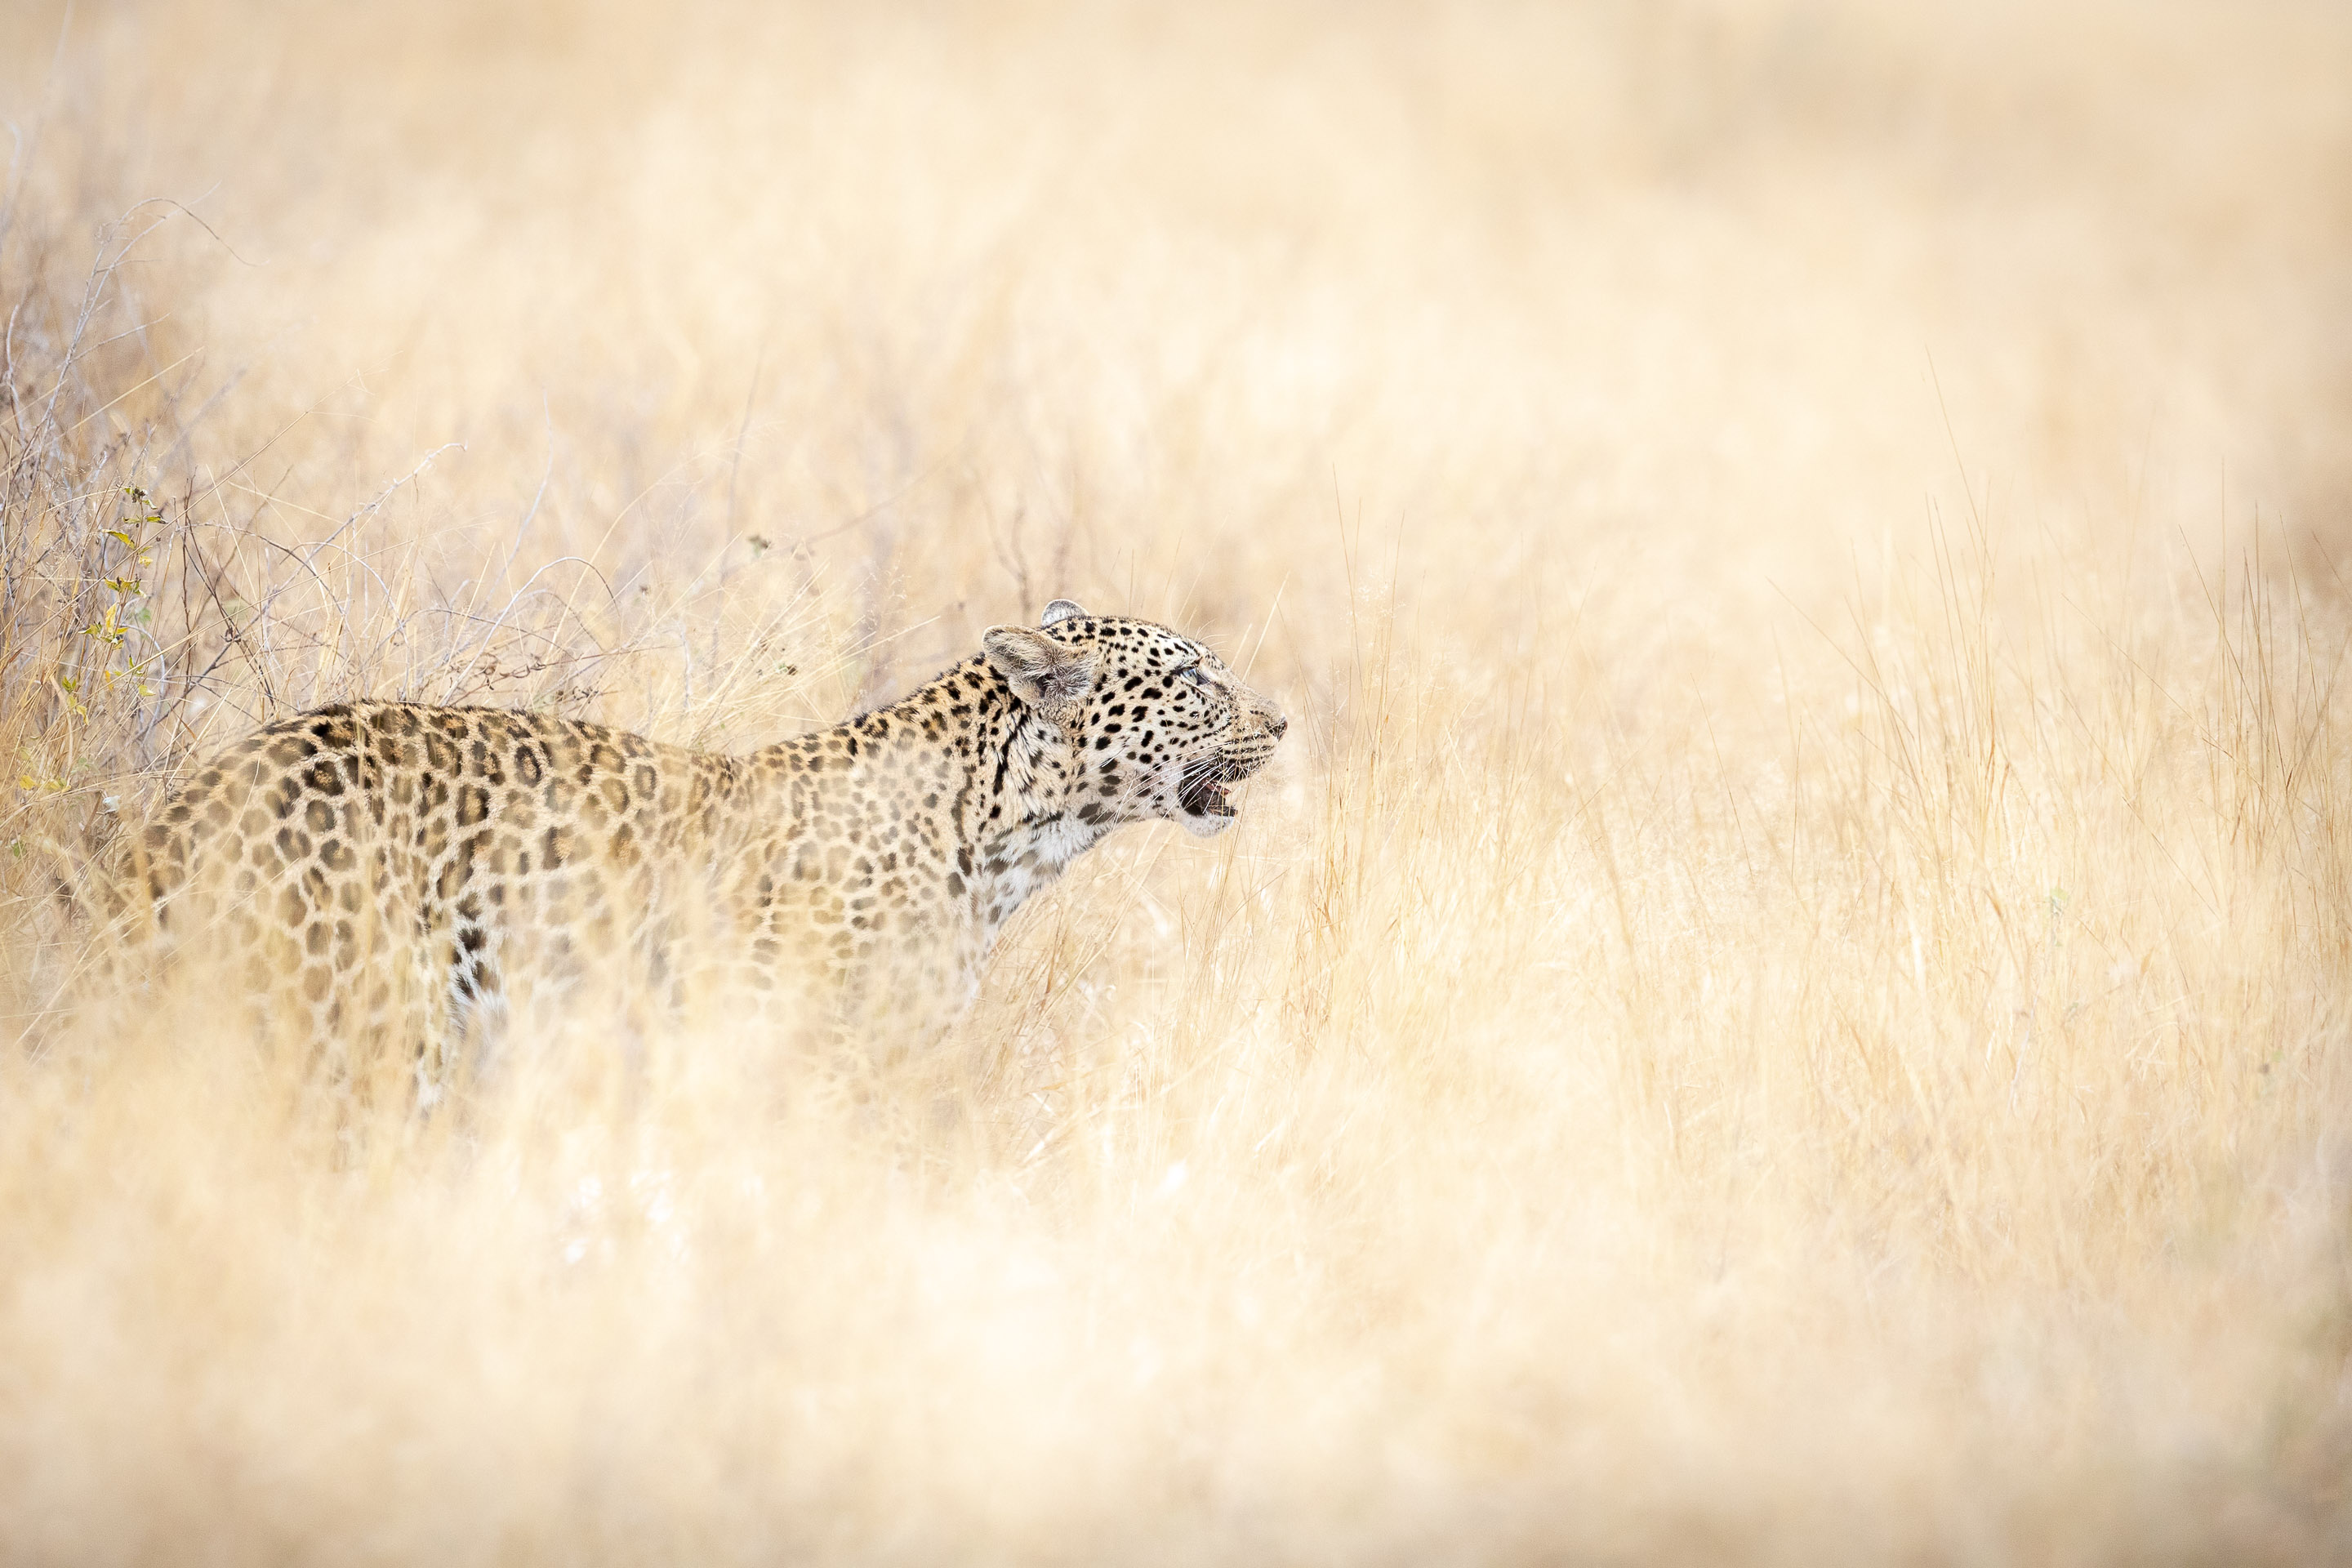 A leopard standing in long grass